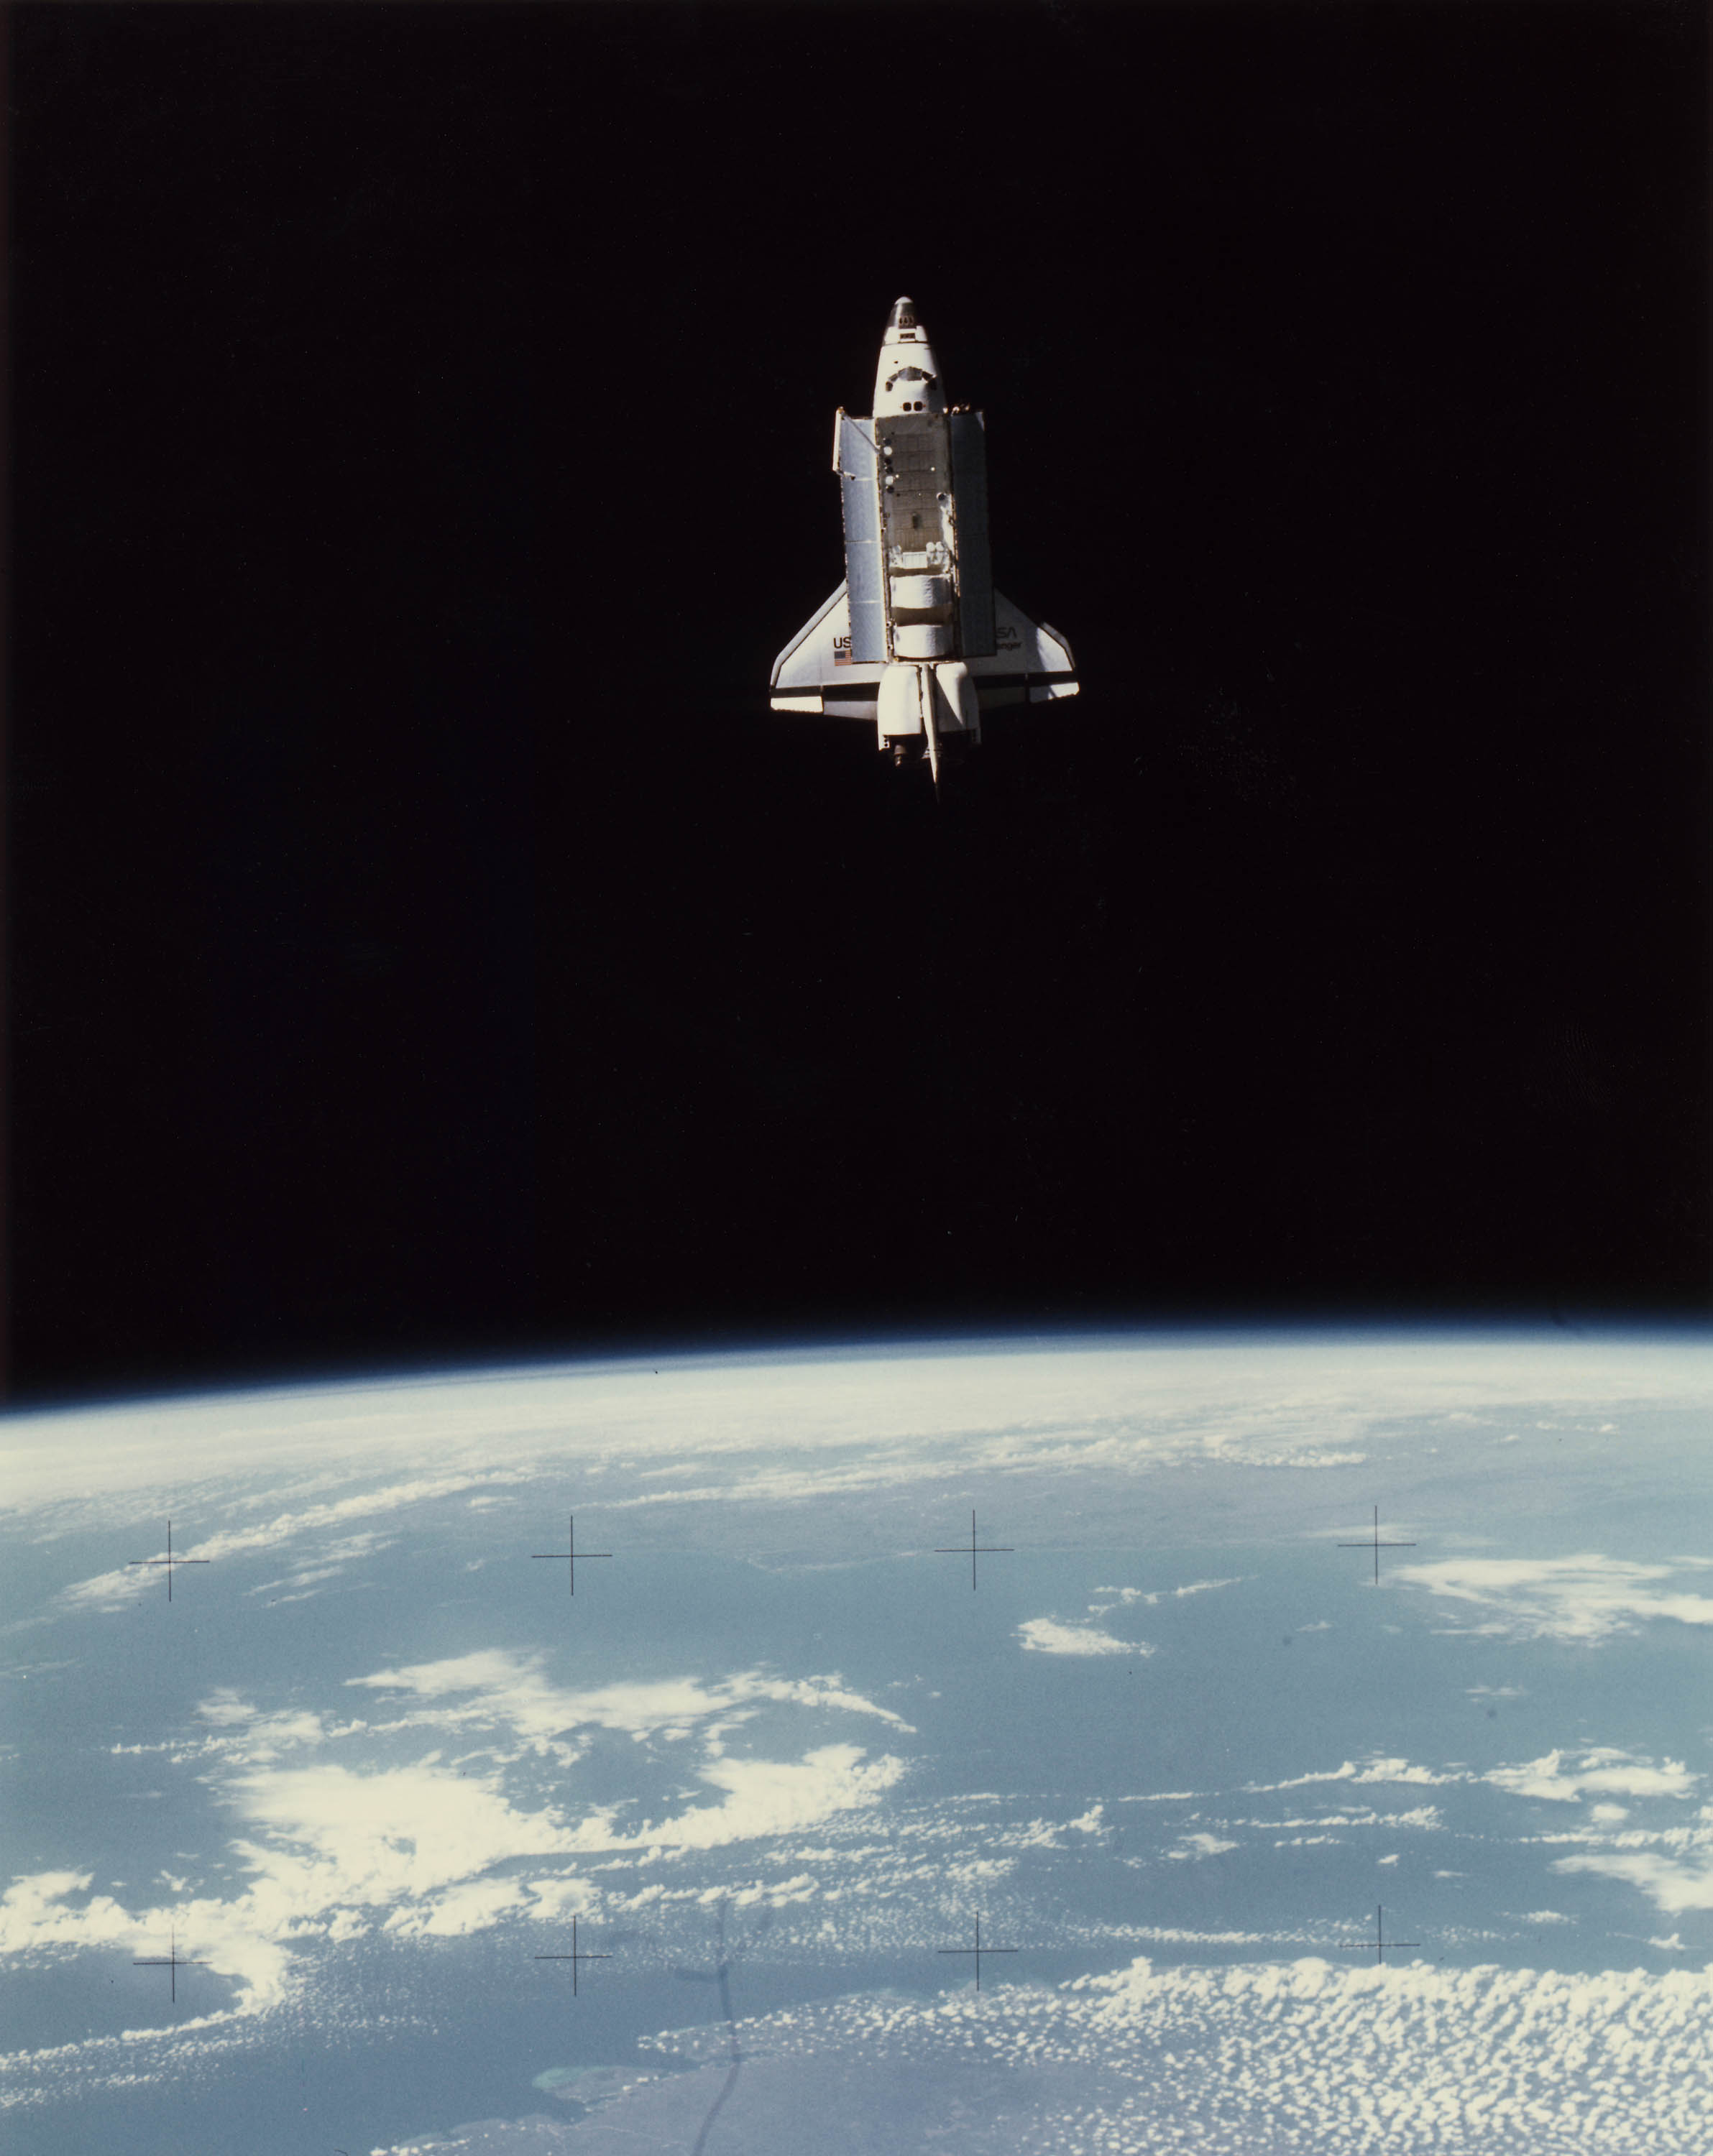 http://www.archives.gov/press/press-kits/picturing-the-century-photos/images/space-shuttle-challenger.jpg